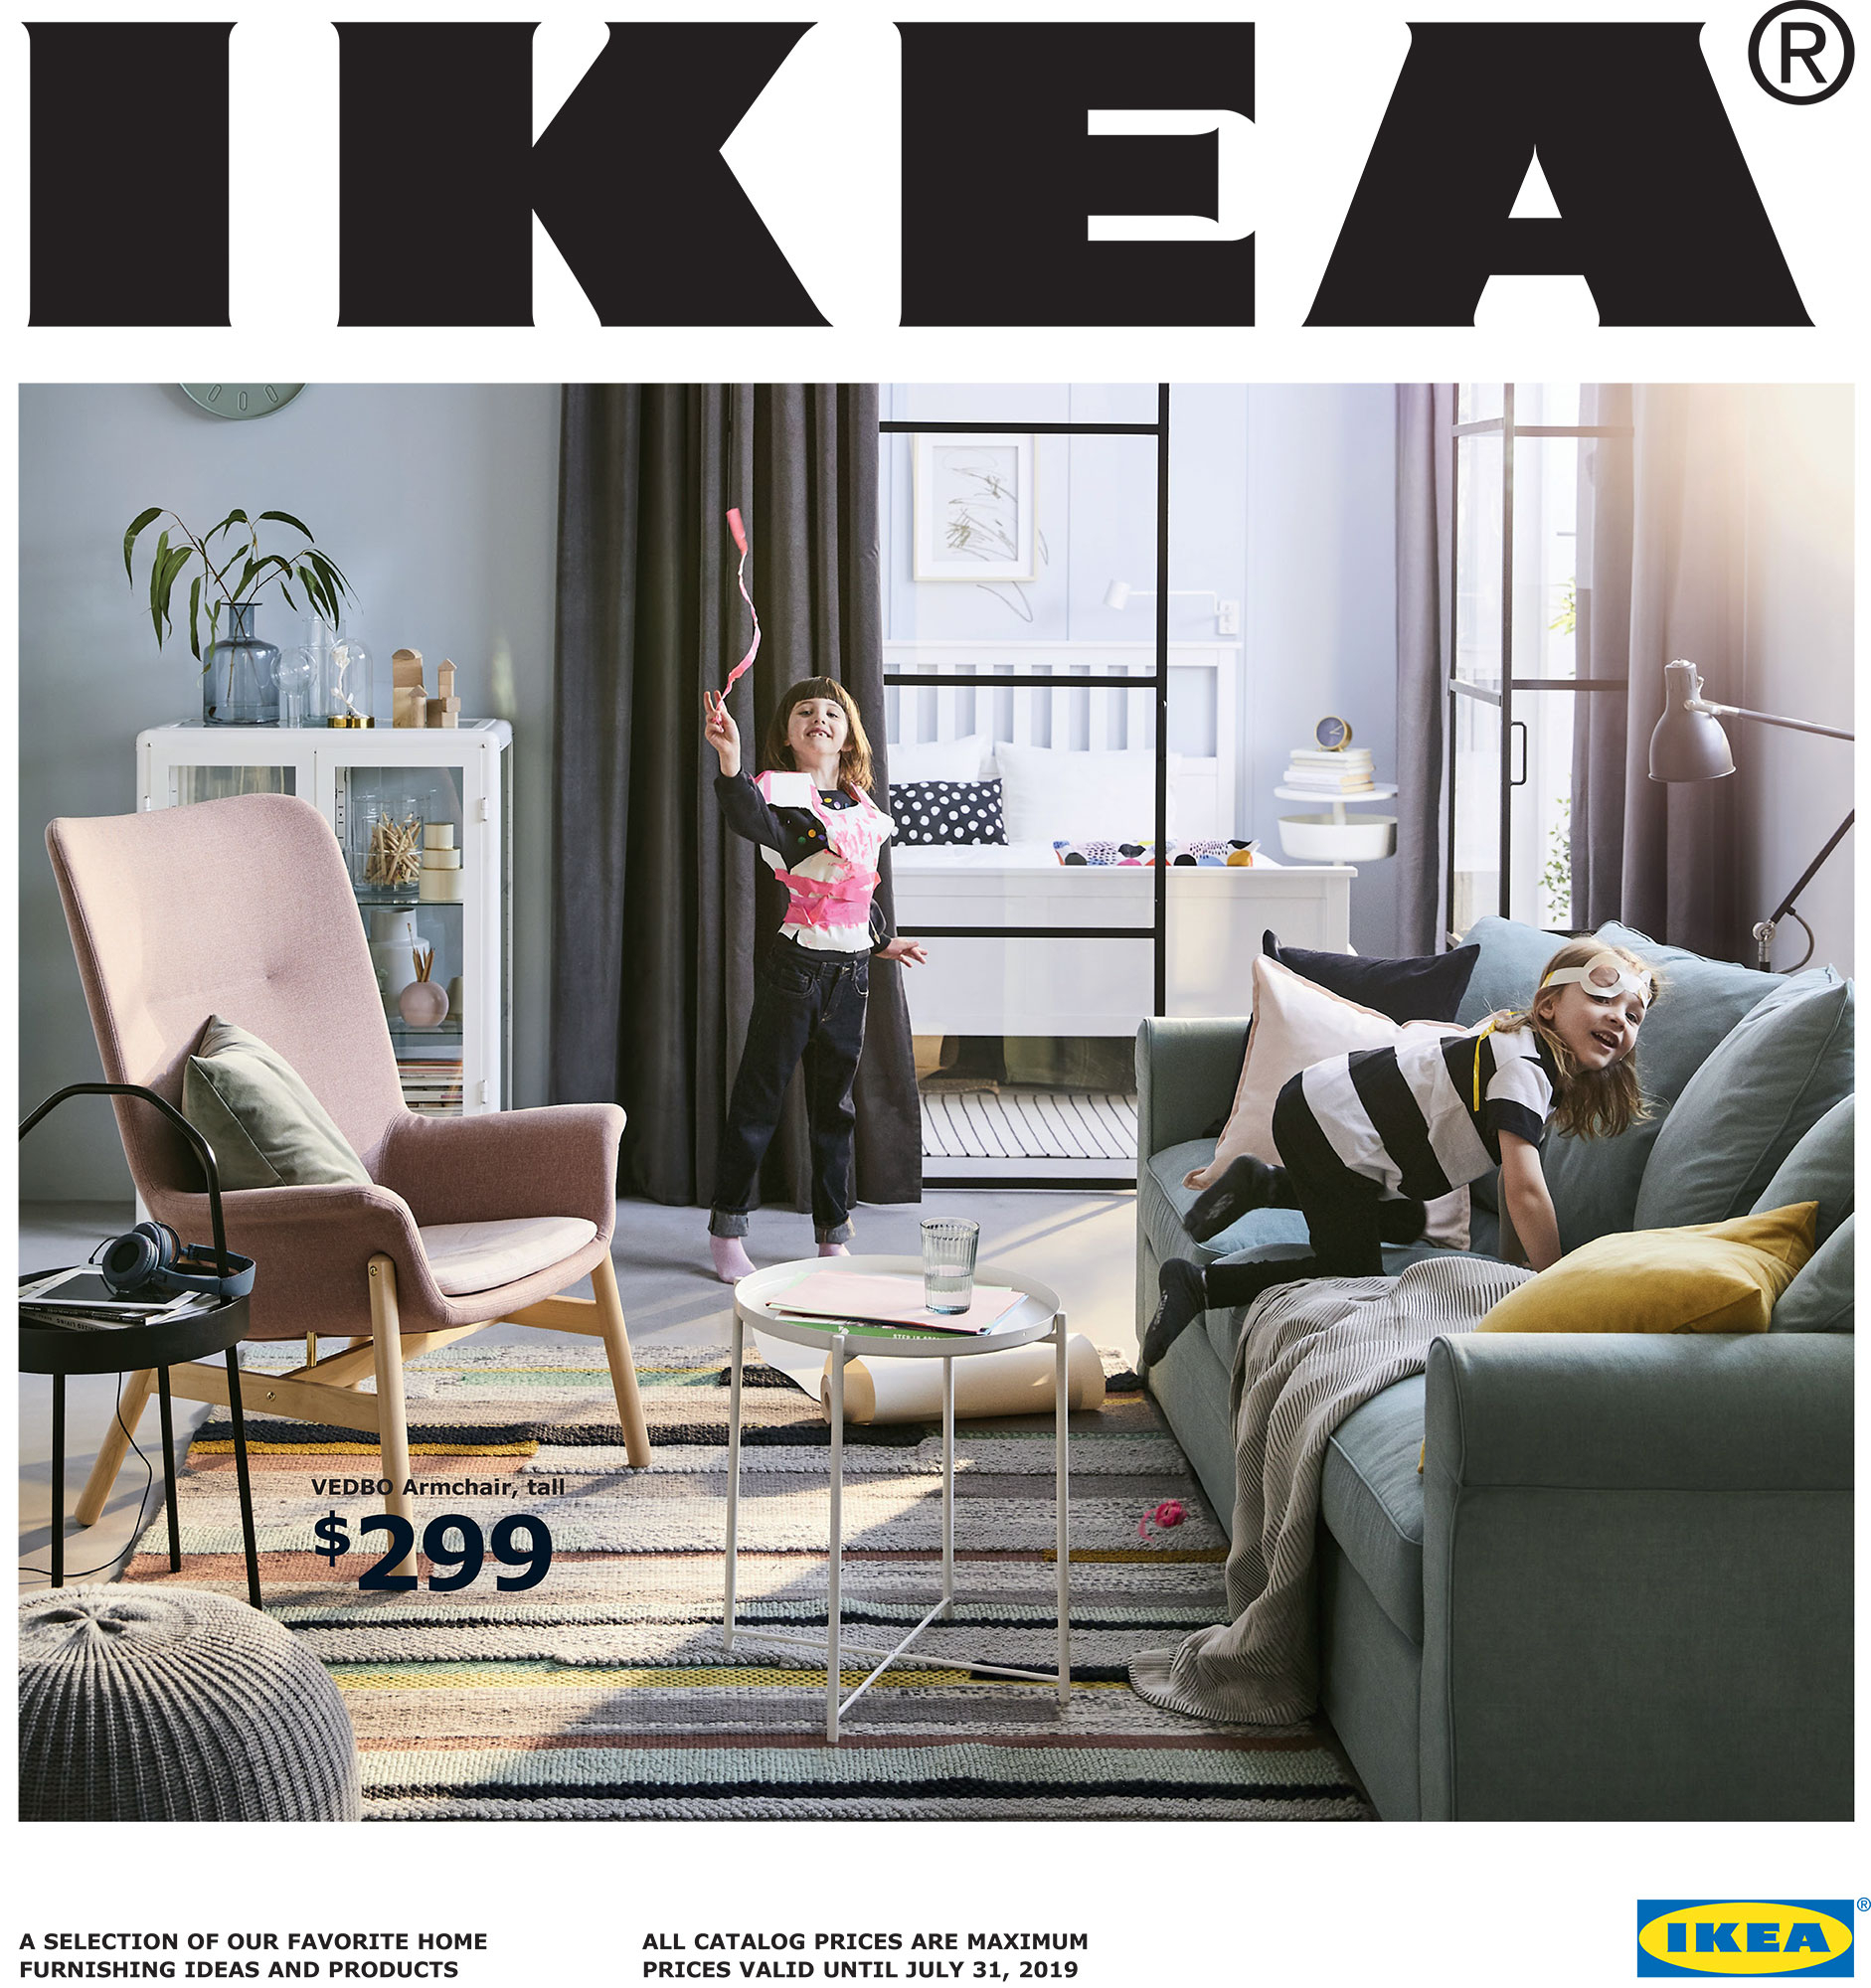 Find The Best Deals On Watanabe 4 Light Single Geometric Throughout Oriana 4 Light Single Geometric Chandeliers (View 23 of 30)